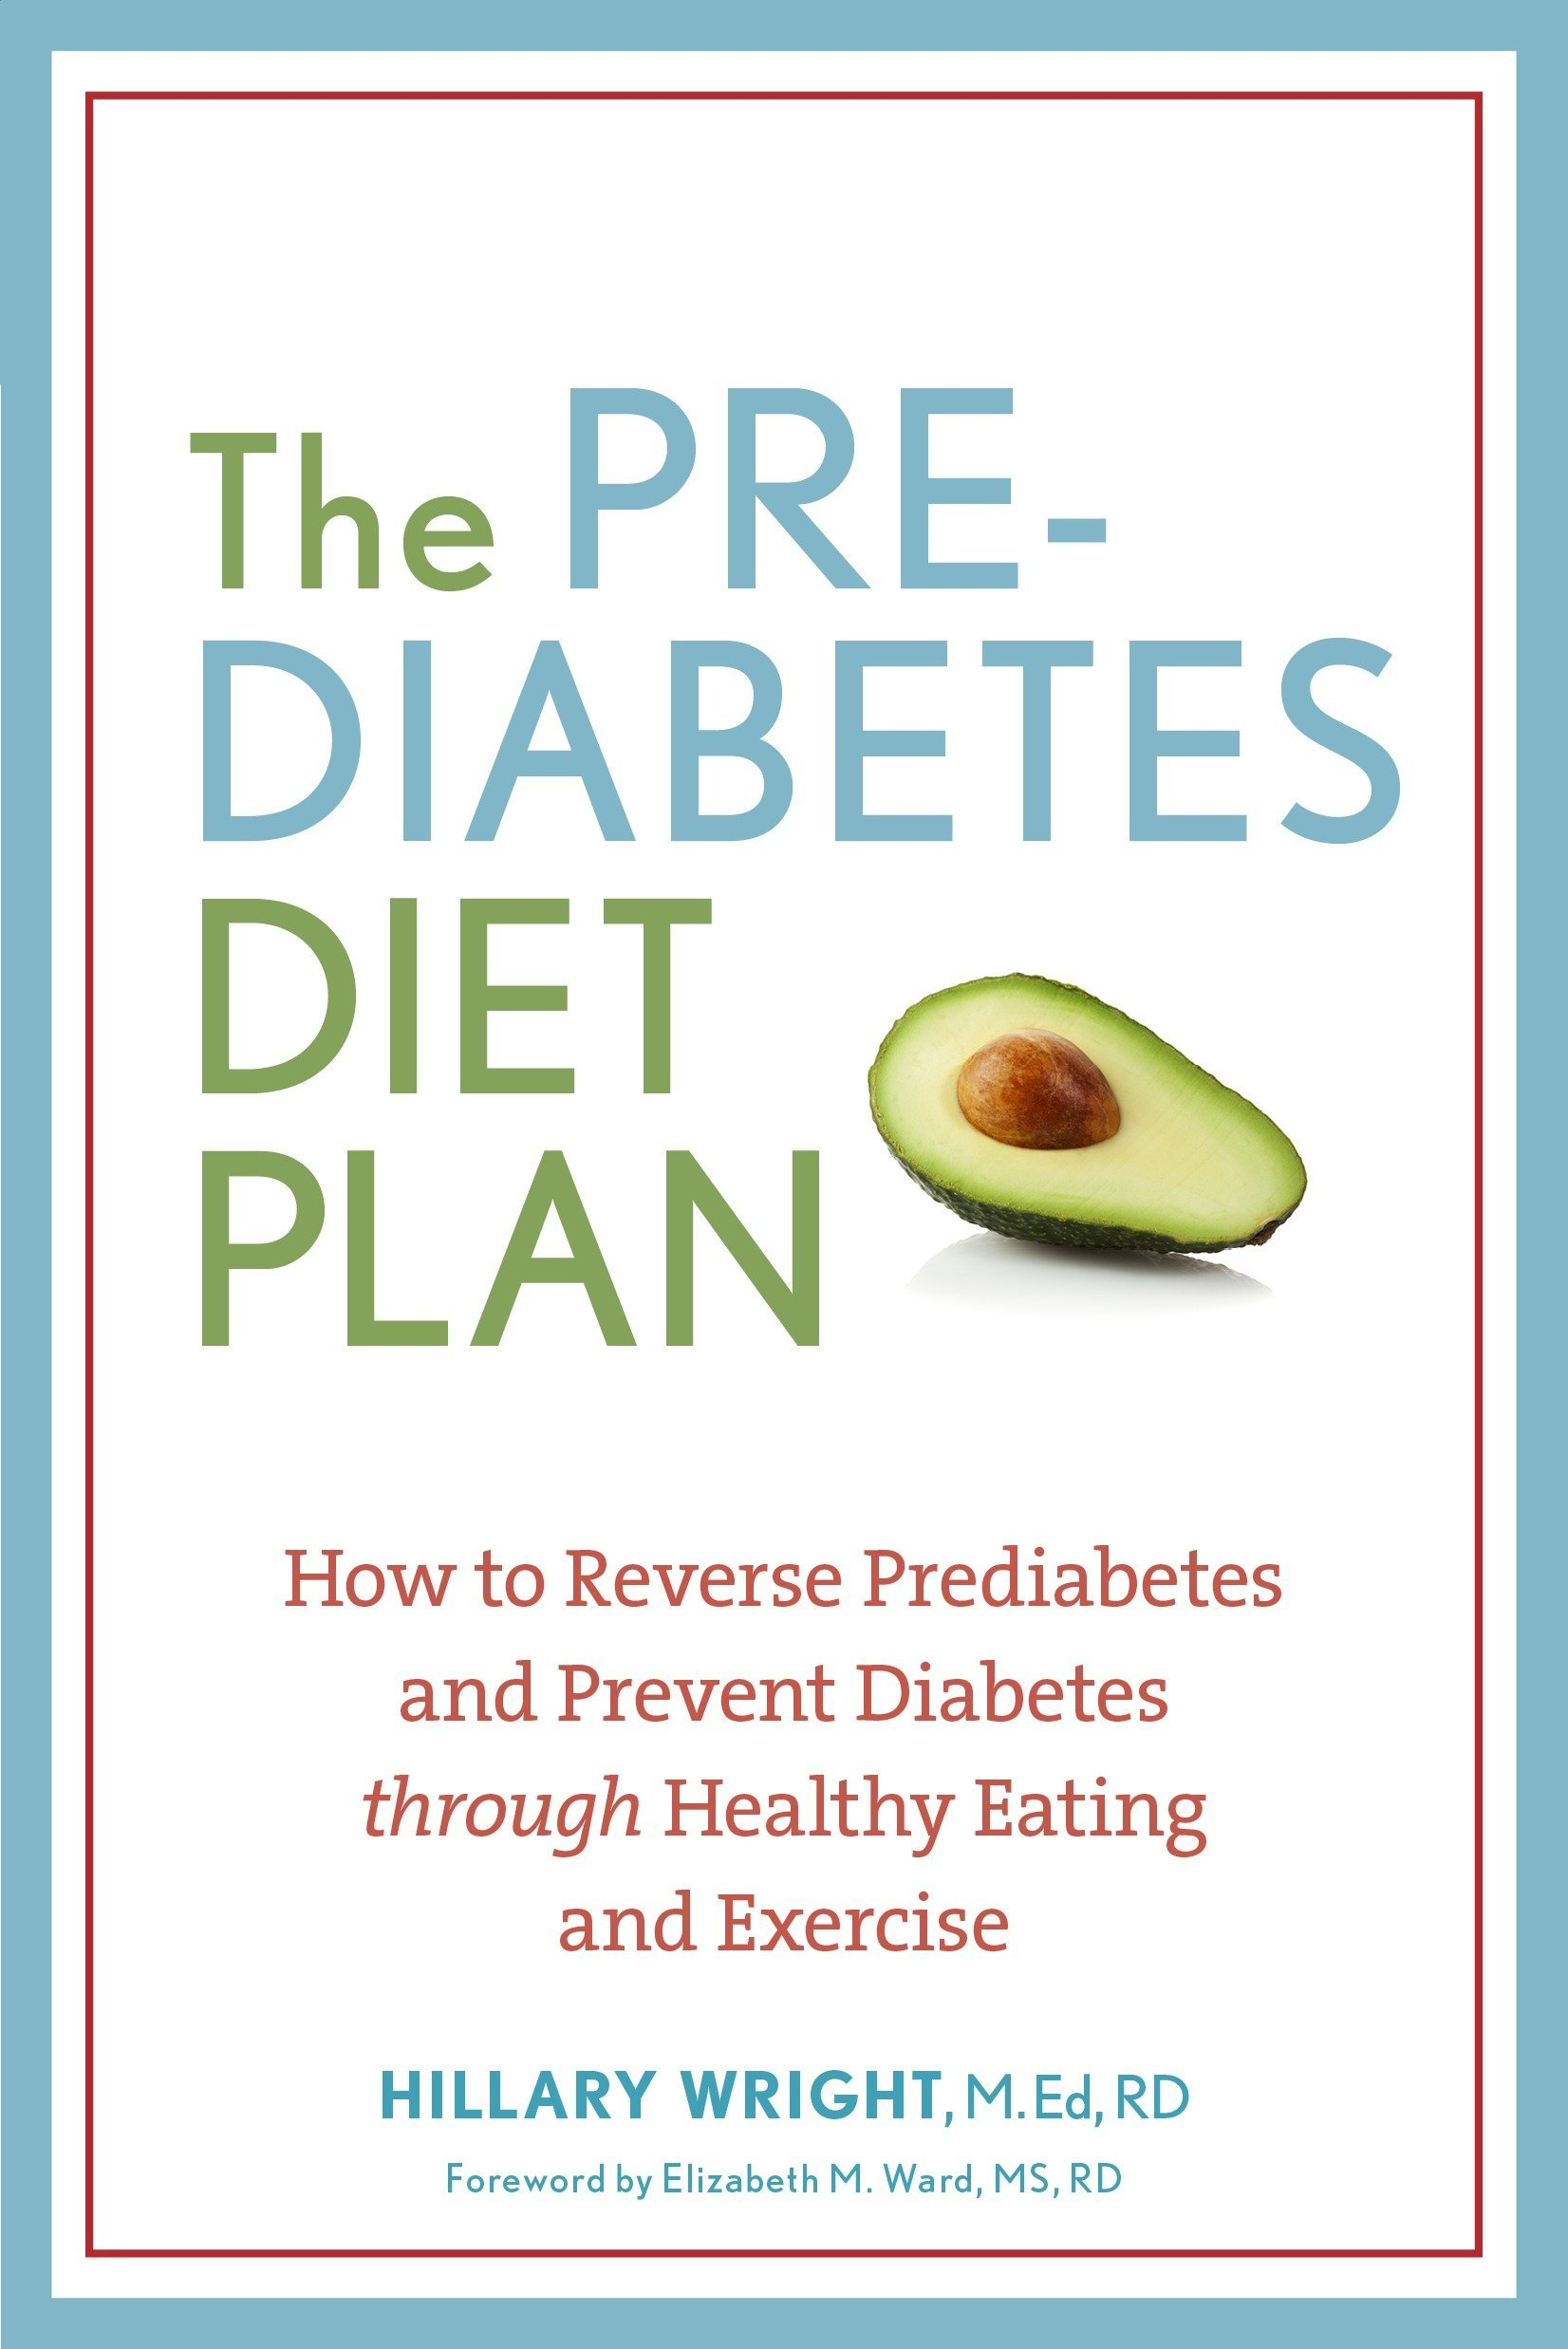 The Prediabetes Diet Plan: How to Reverse Prediabetes and Prevent Diabetes through Healthy Eating and Exercise ebook